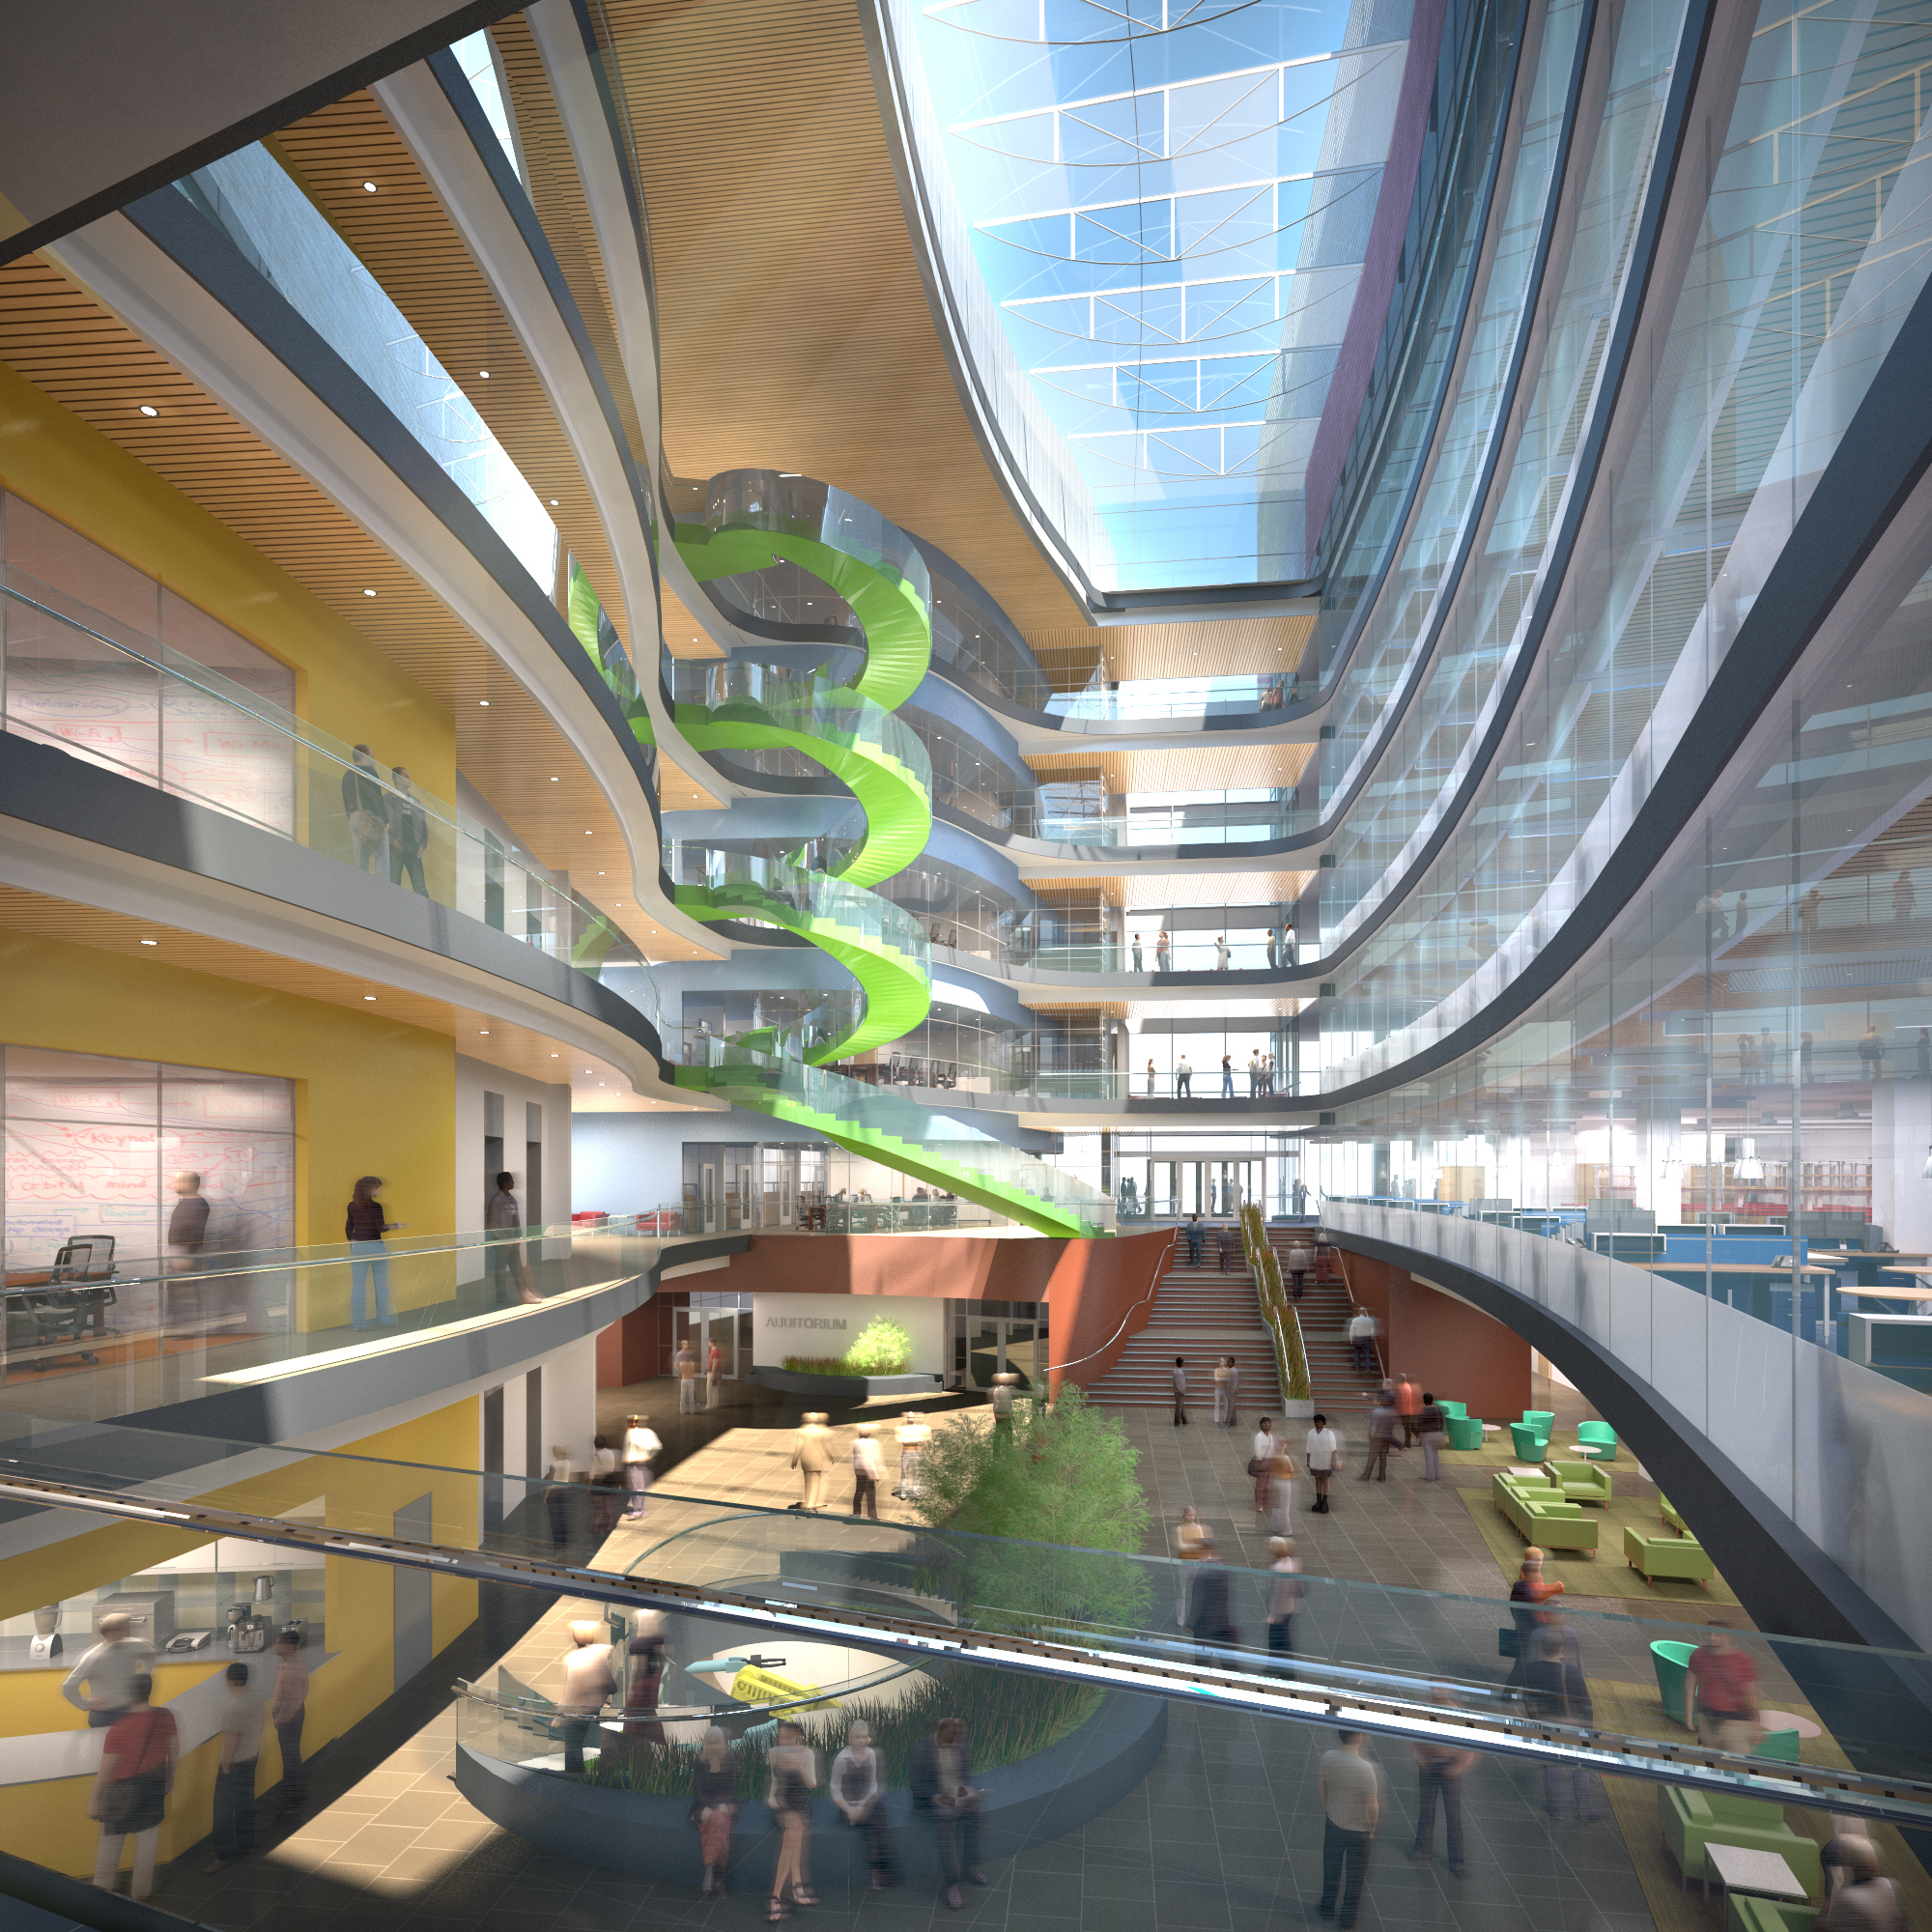 The building's research and office wings will both open to a central atrium that is designed to promote collaborative research and learning. - Copyright Payette